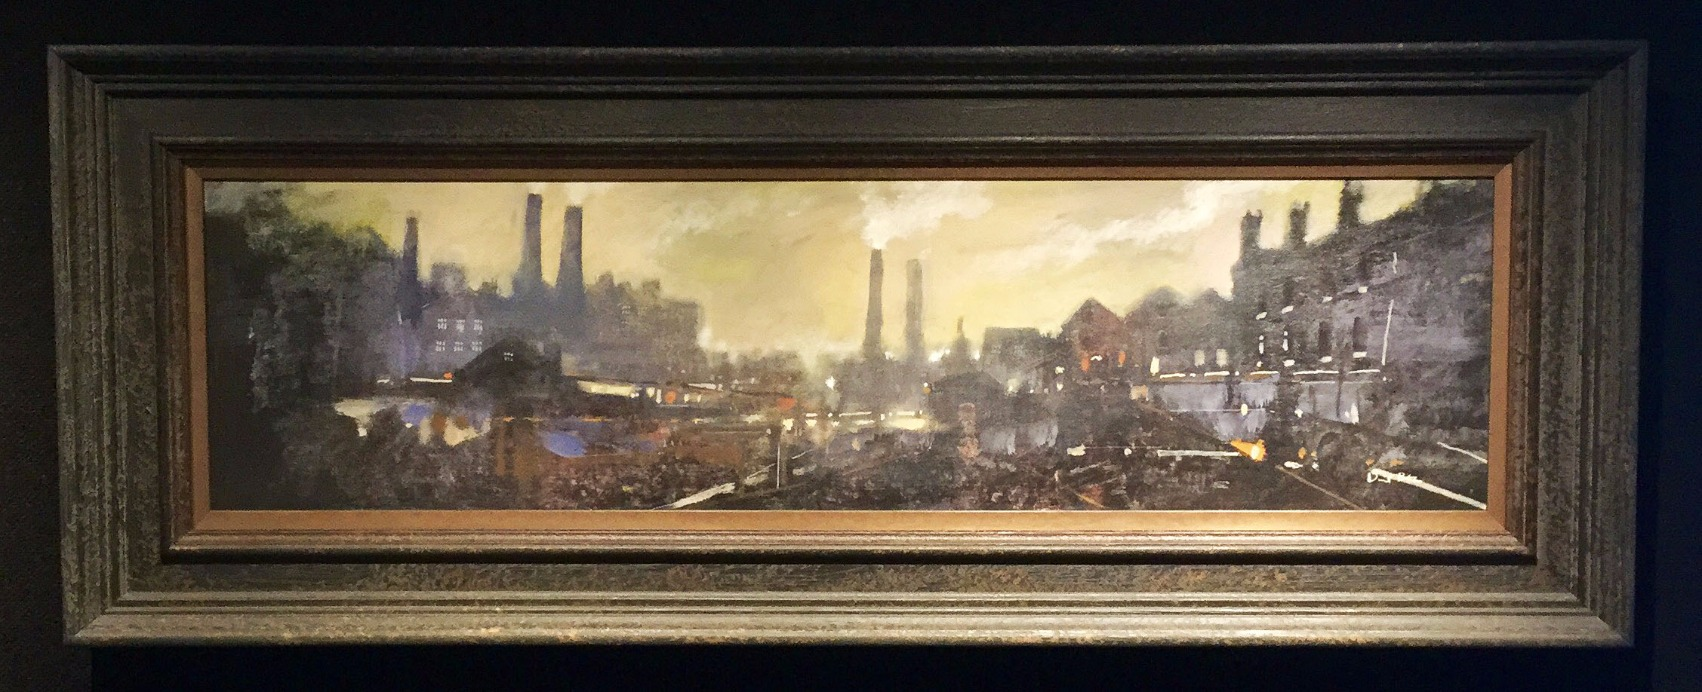 Another Working Day by David Bez, Northern | Nostalgic | Industrial | Landscape